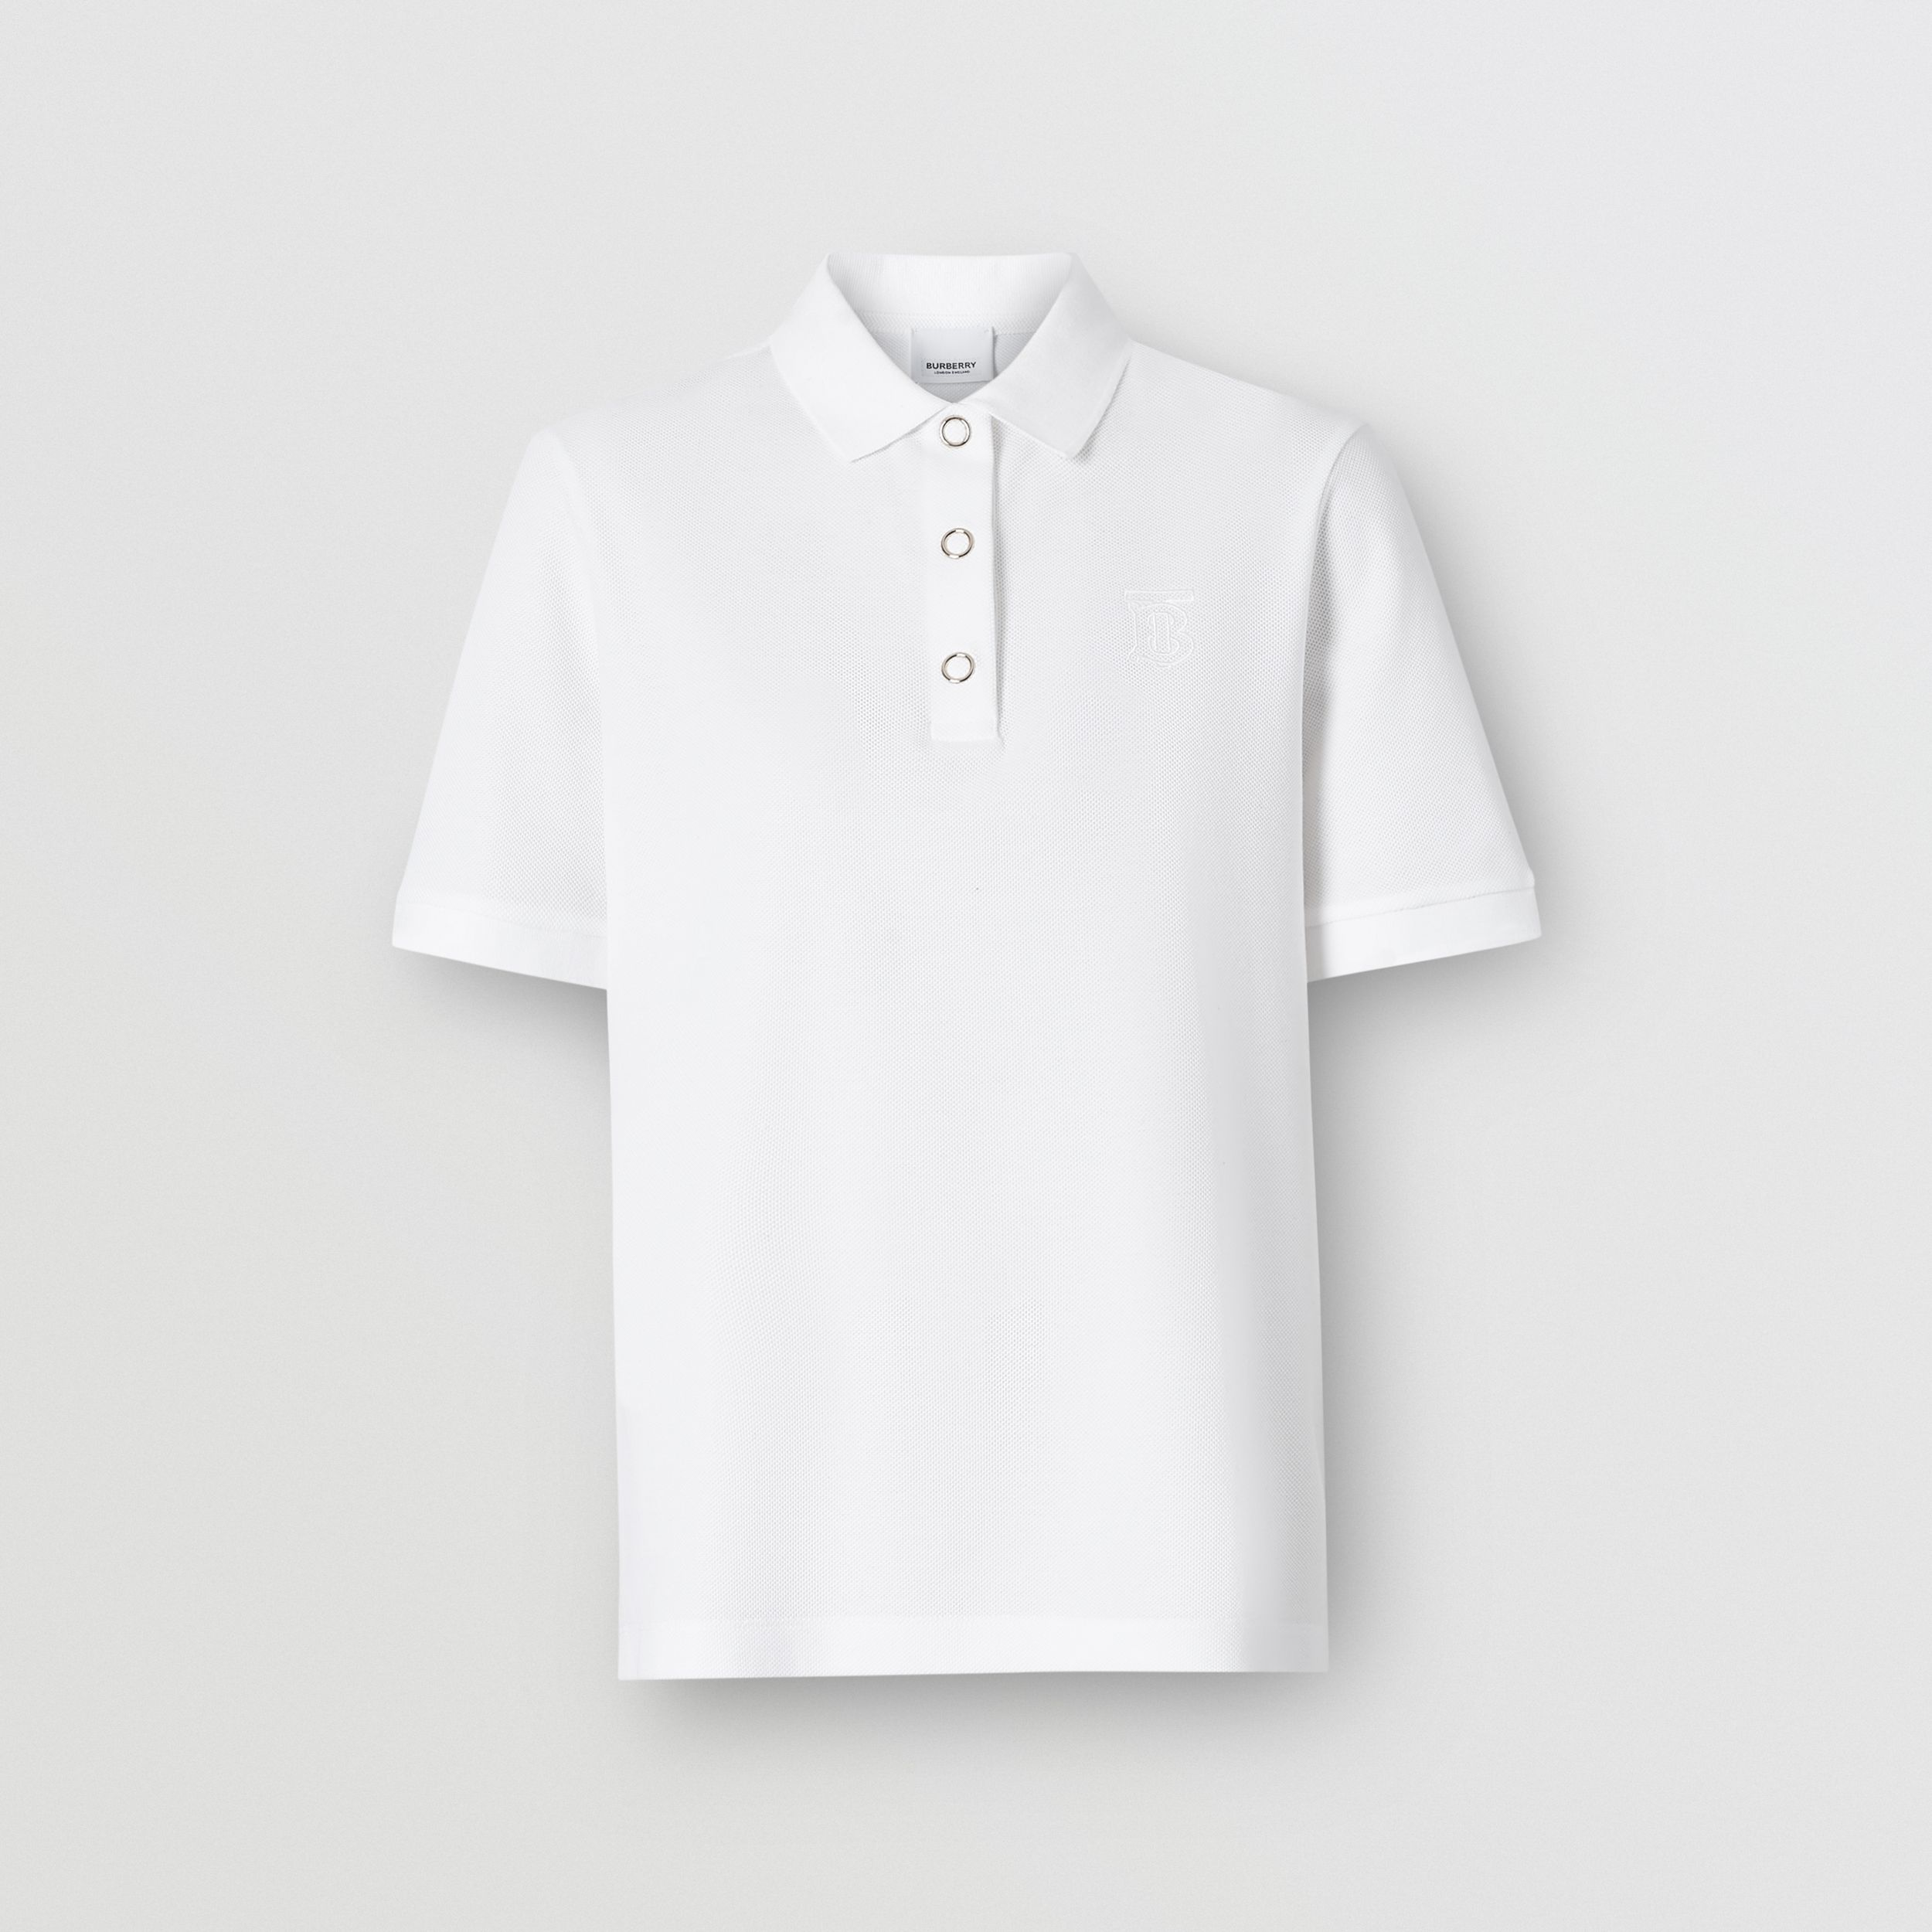 Monogram Motif Cotton Piqué Polo Shirt in White - Women | Burberry Hong Kong S.A.R. - 4